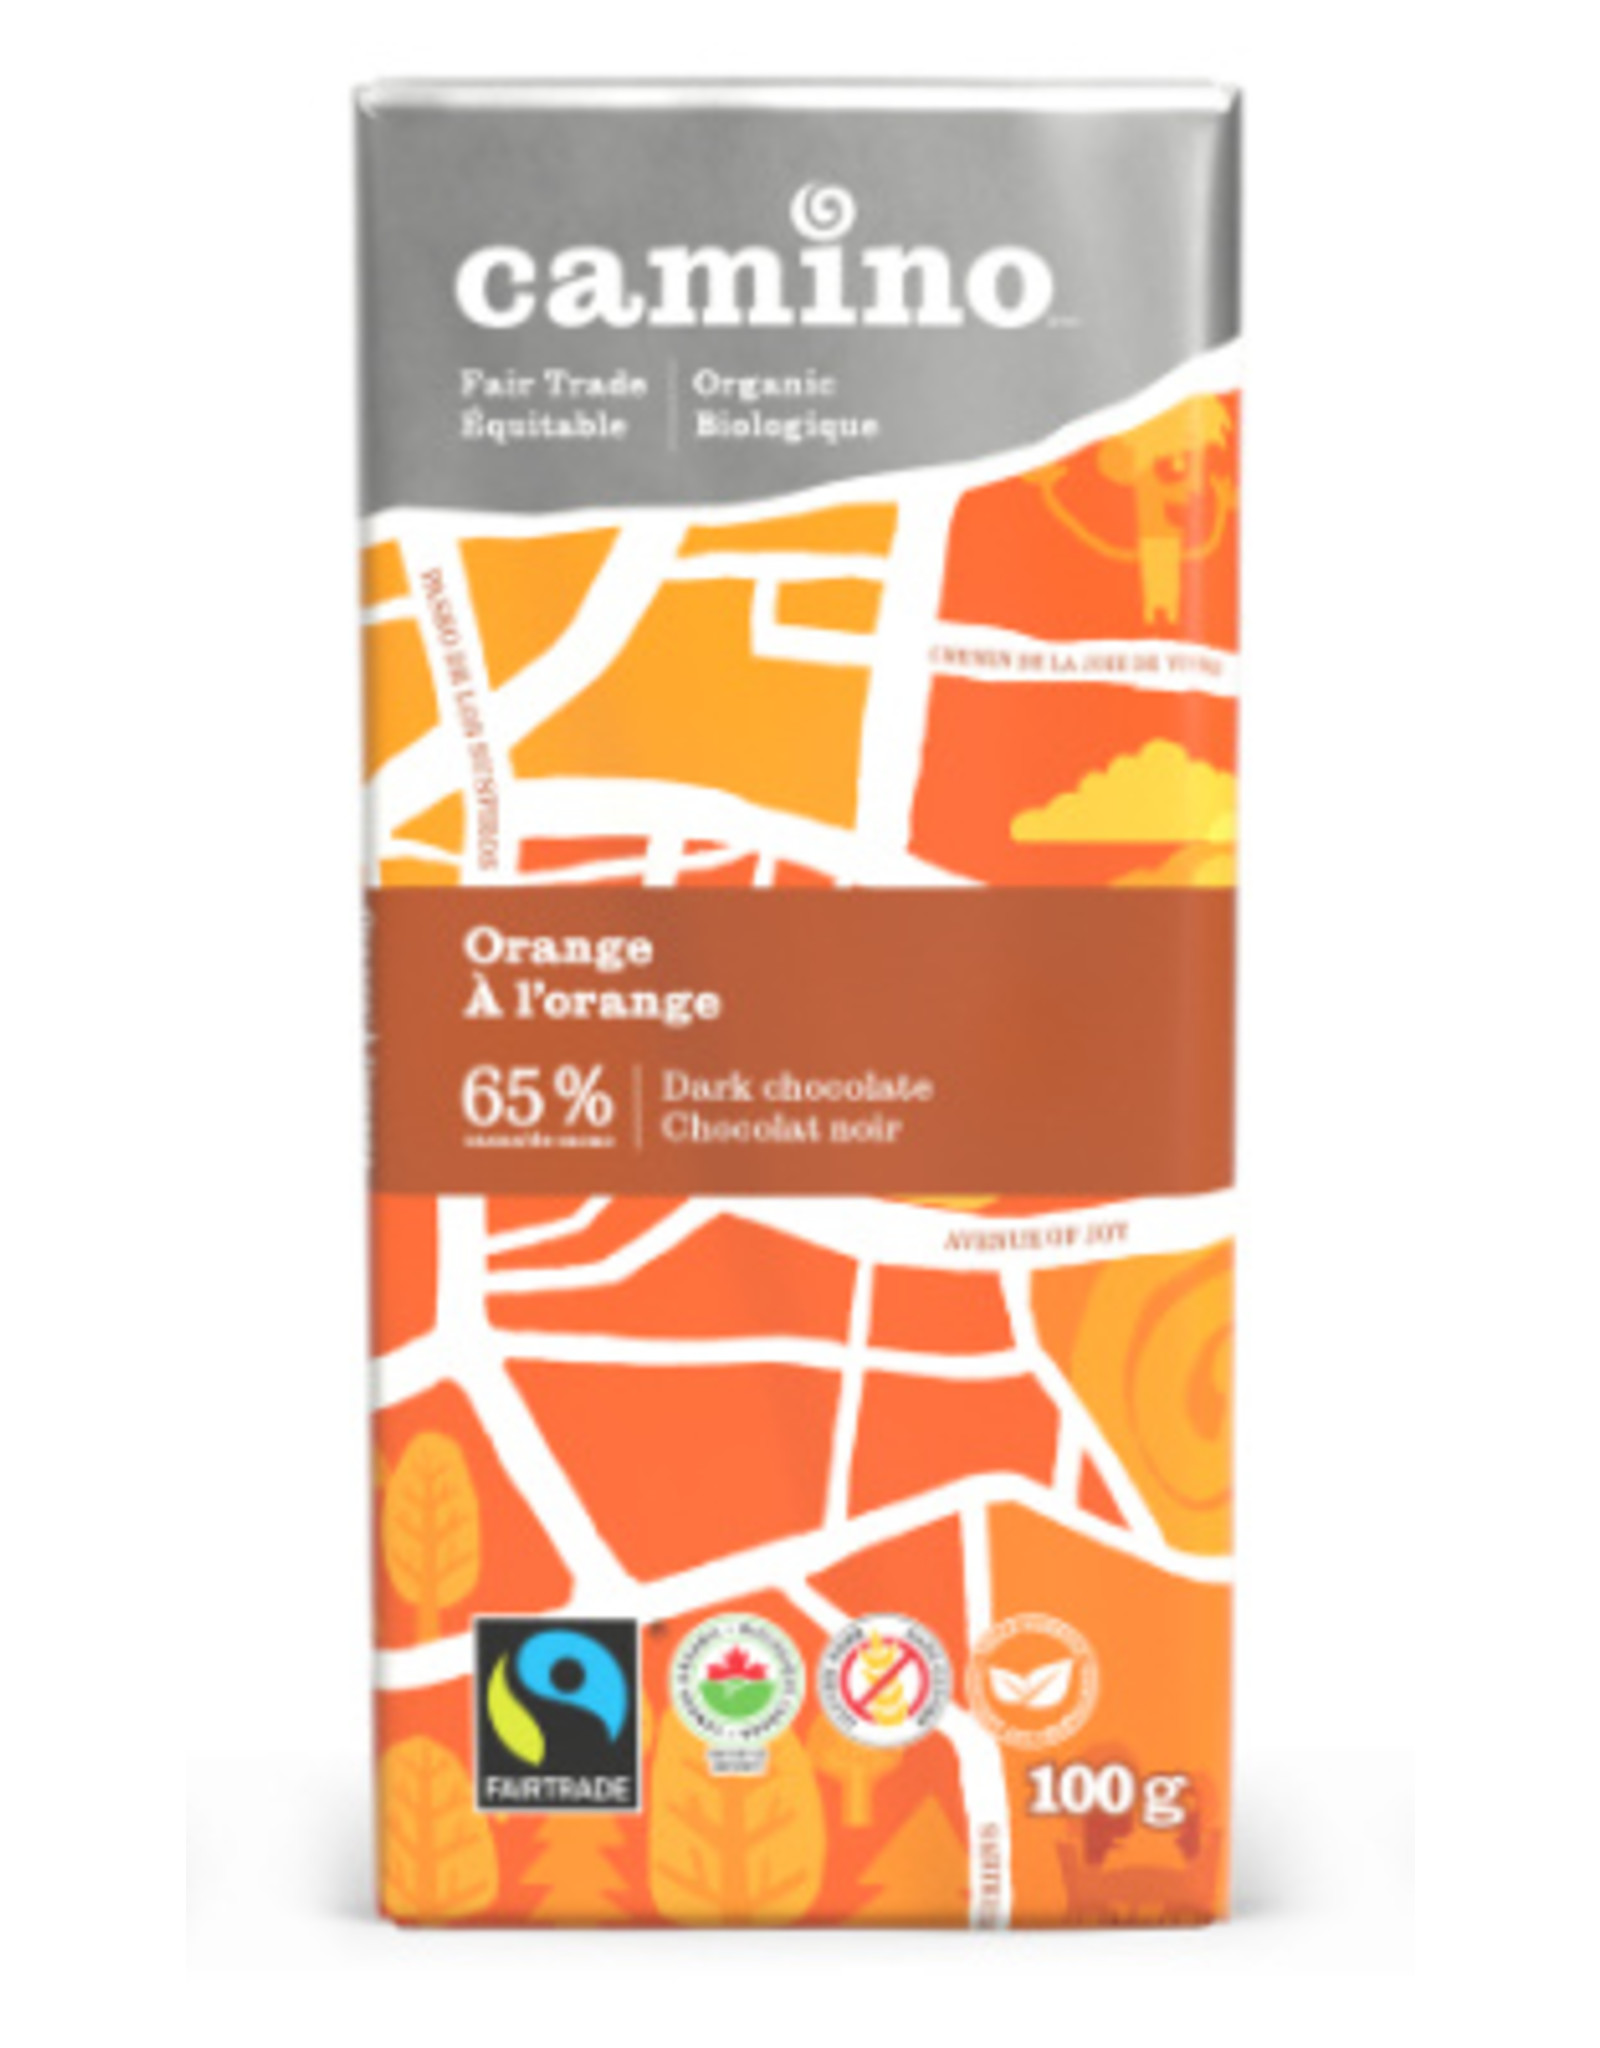 Camino Camino Orange 65% dark choc bar 100g